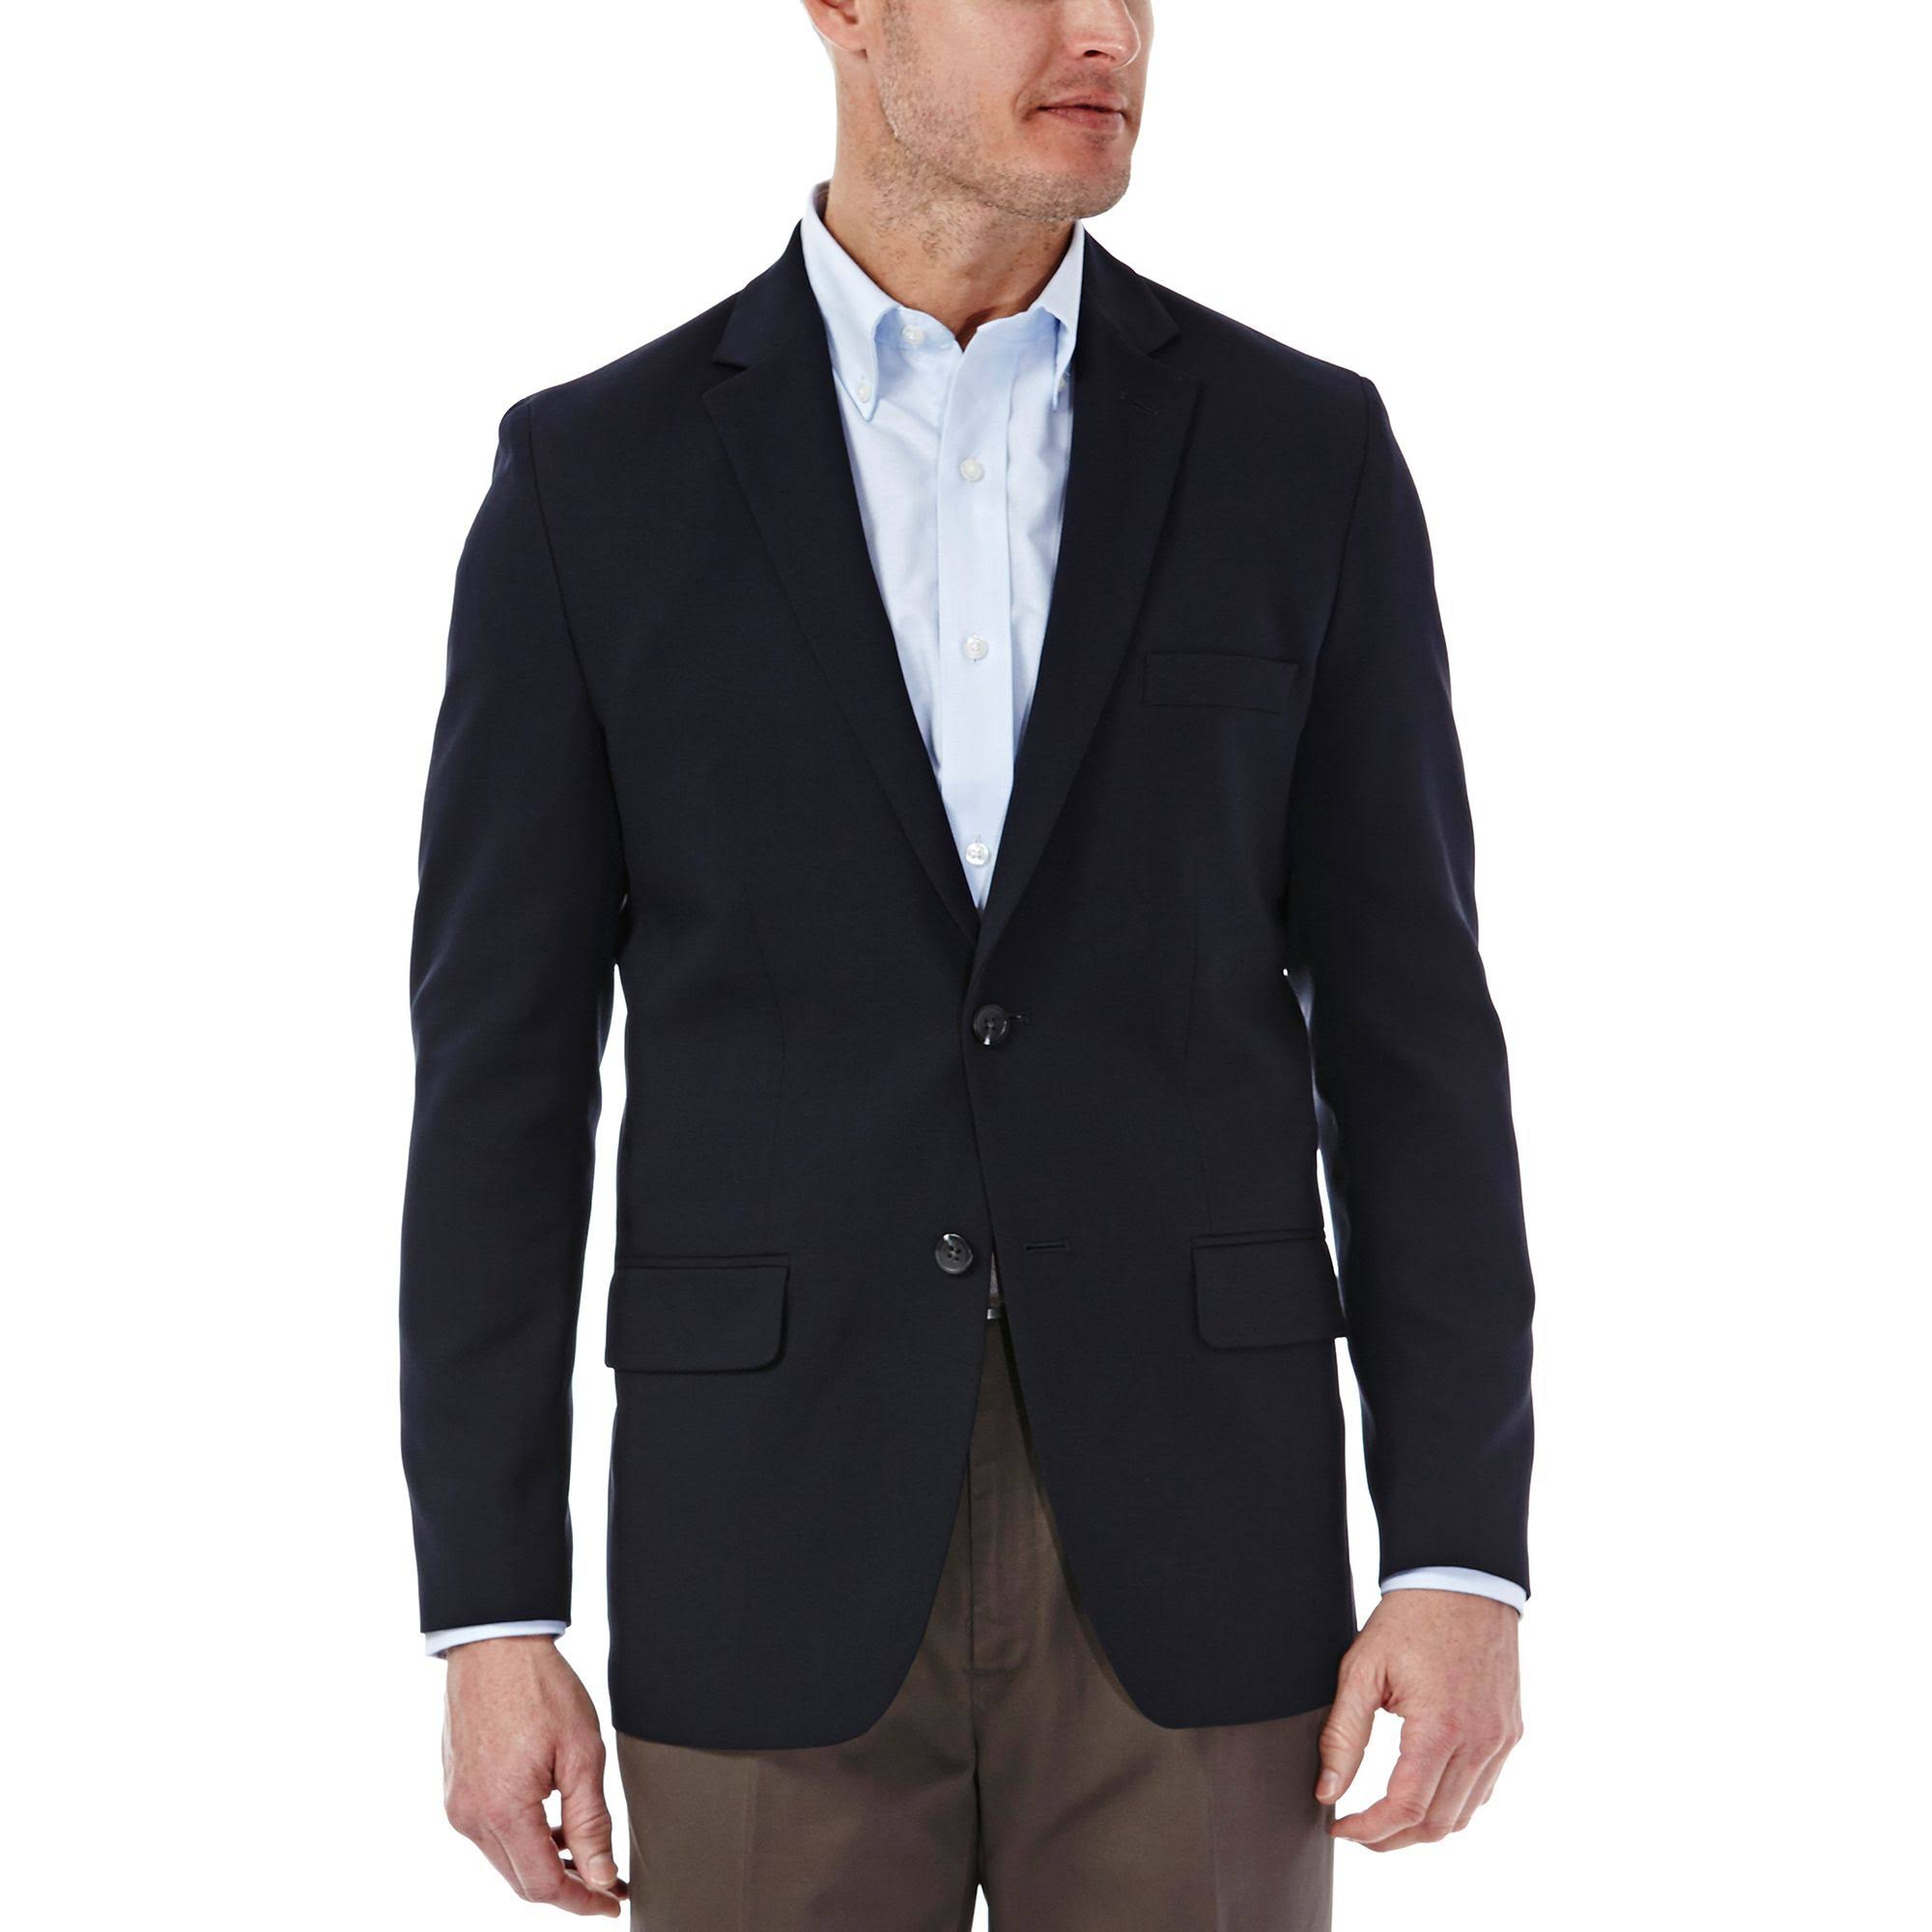 Haggar Clothing Men's Tailored Fit In Motion Blazer - Black